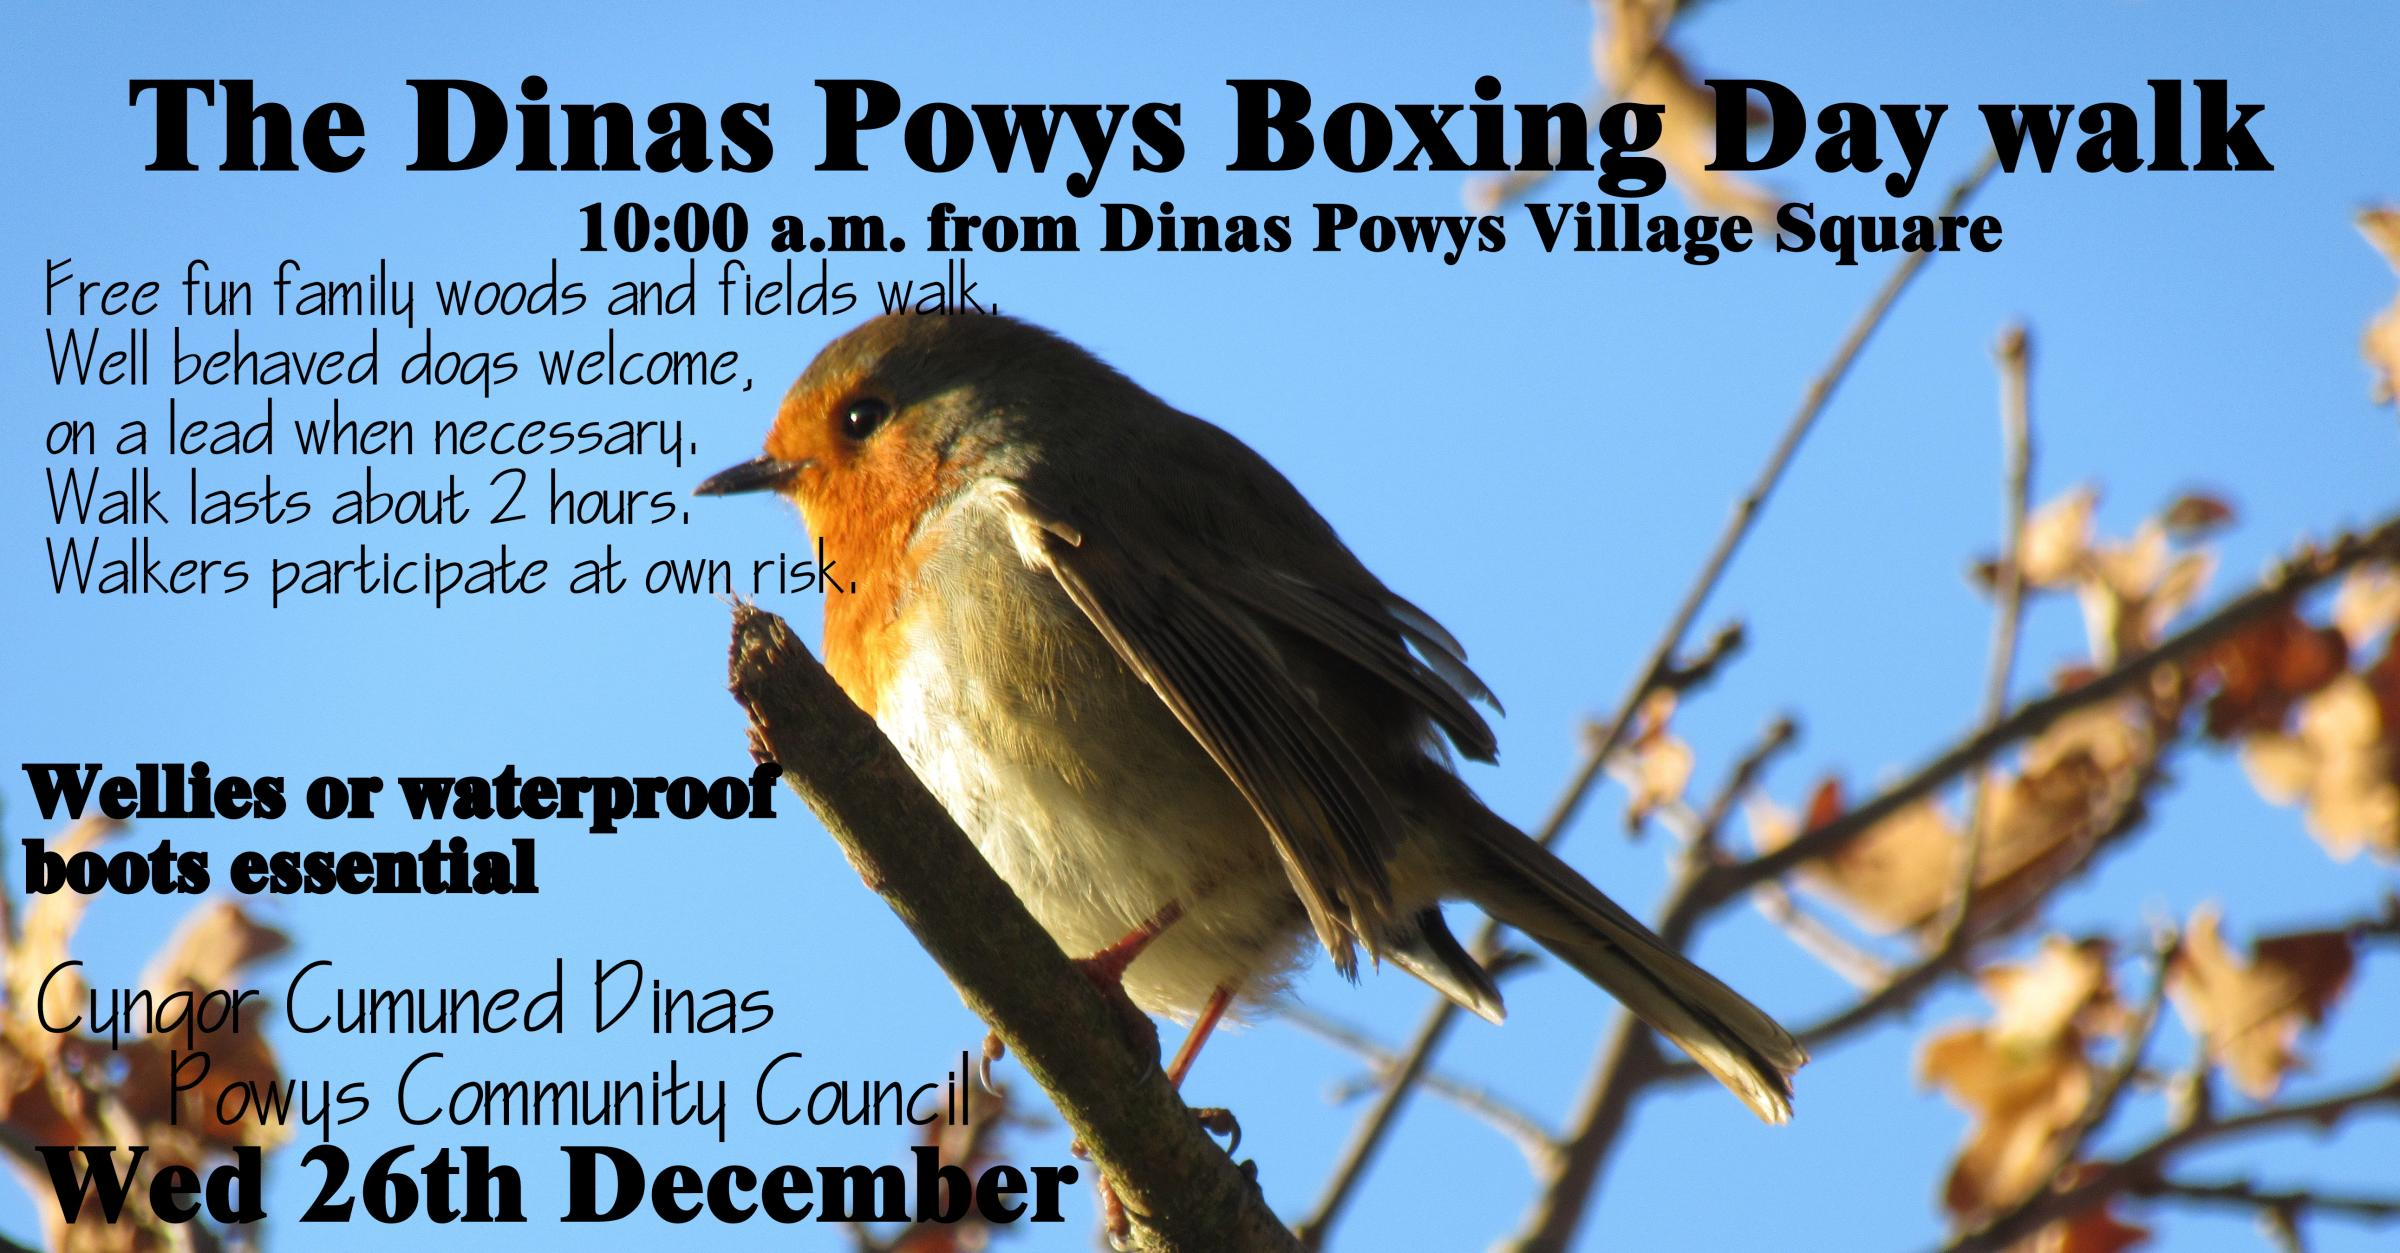 The Dinas Powys Boxing Day Walk